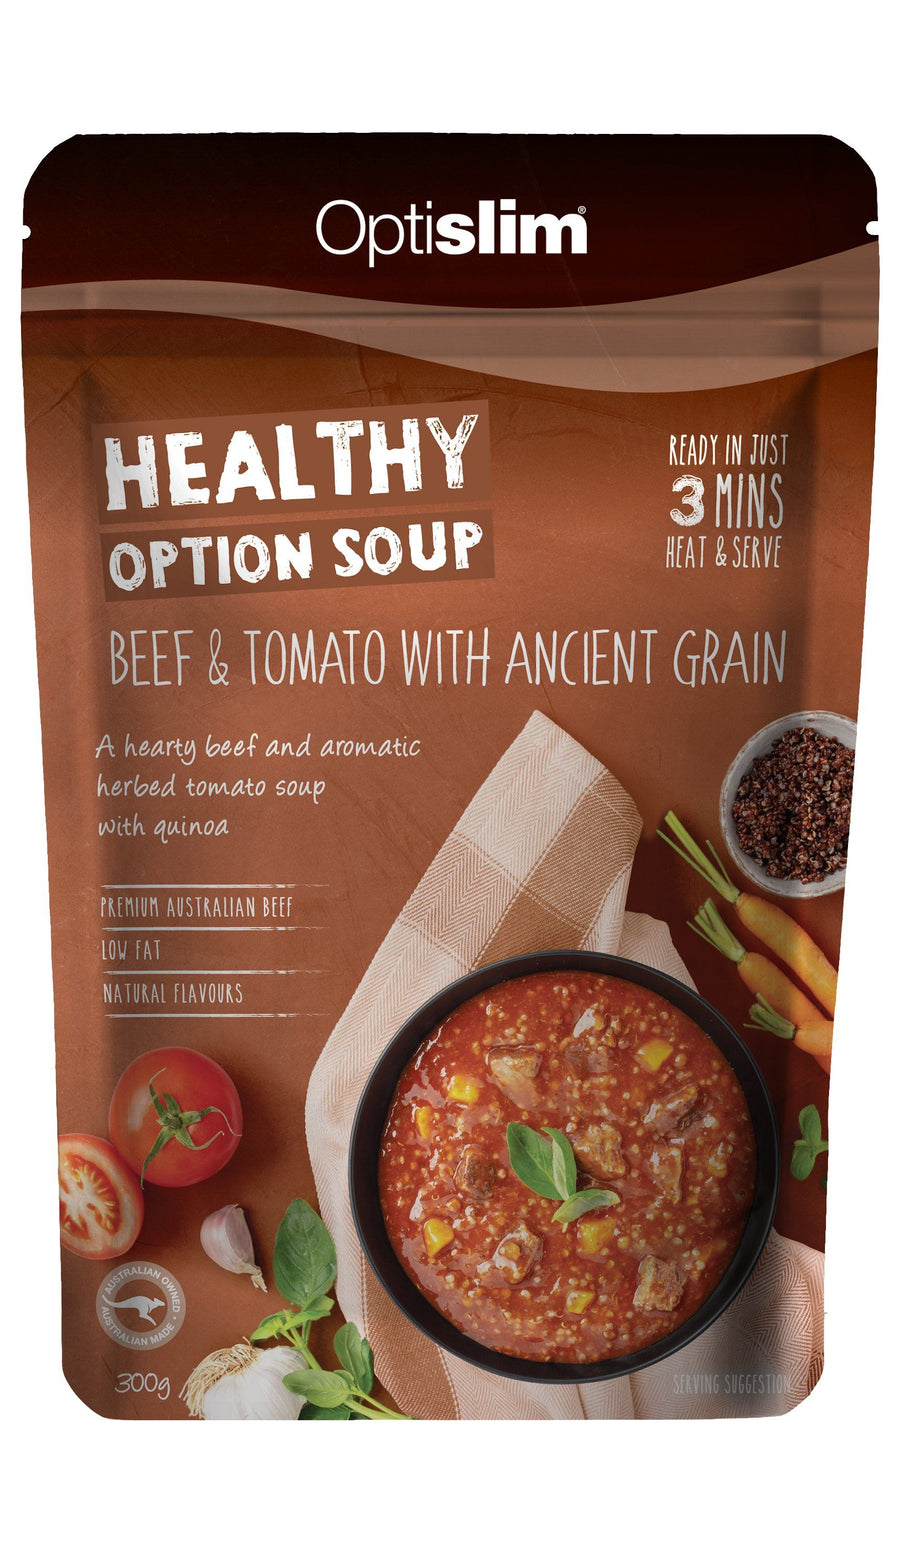 Healthy Option Soup Beef & Tomato with Ancient Grain Weight Loss OptiSlim